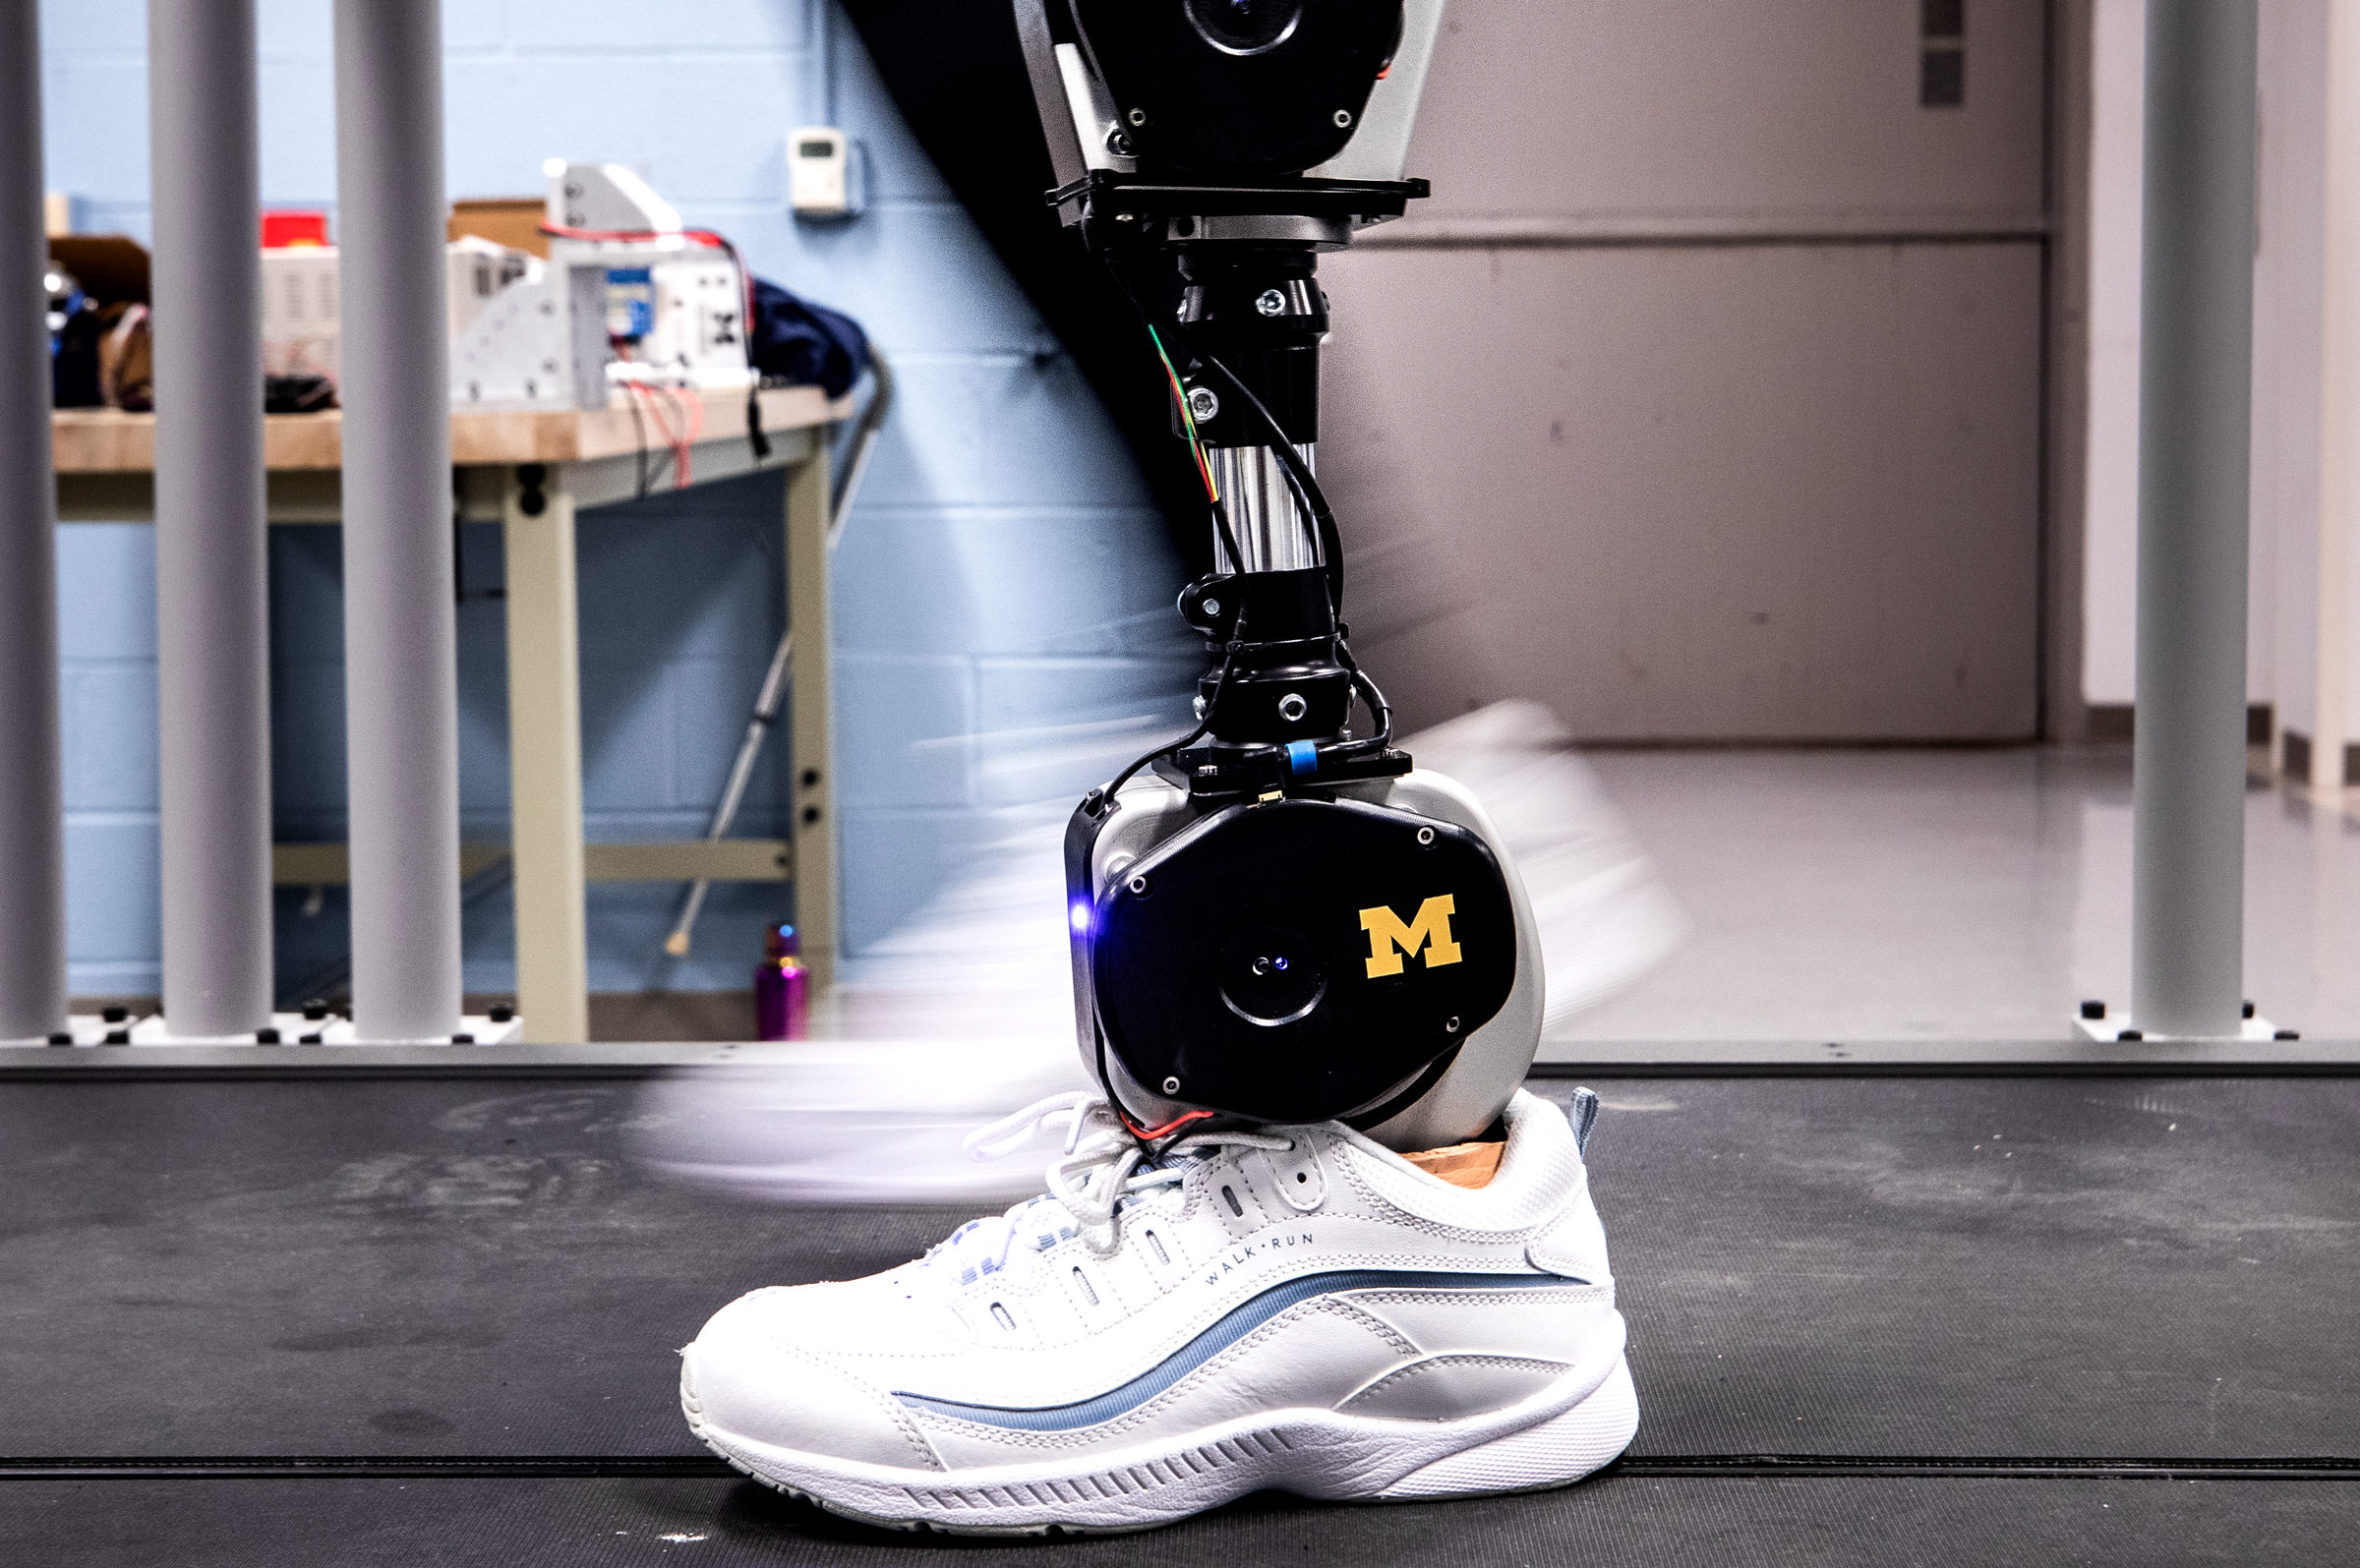 A robot leg practices walking on a treadmill